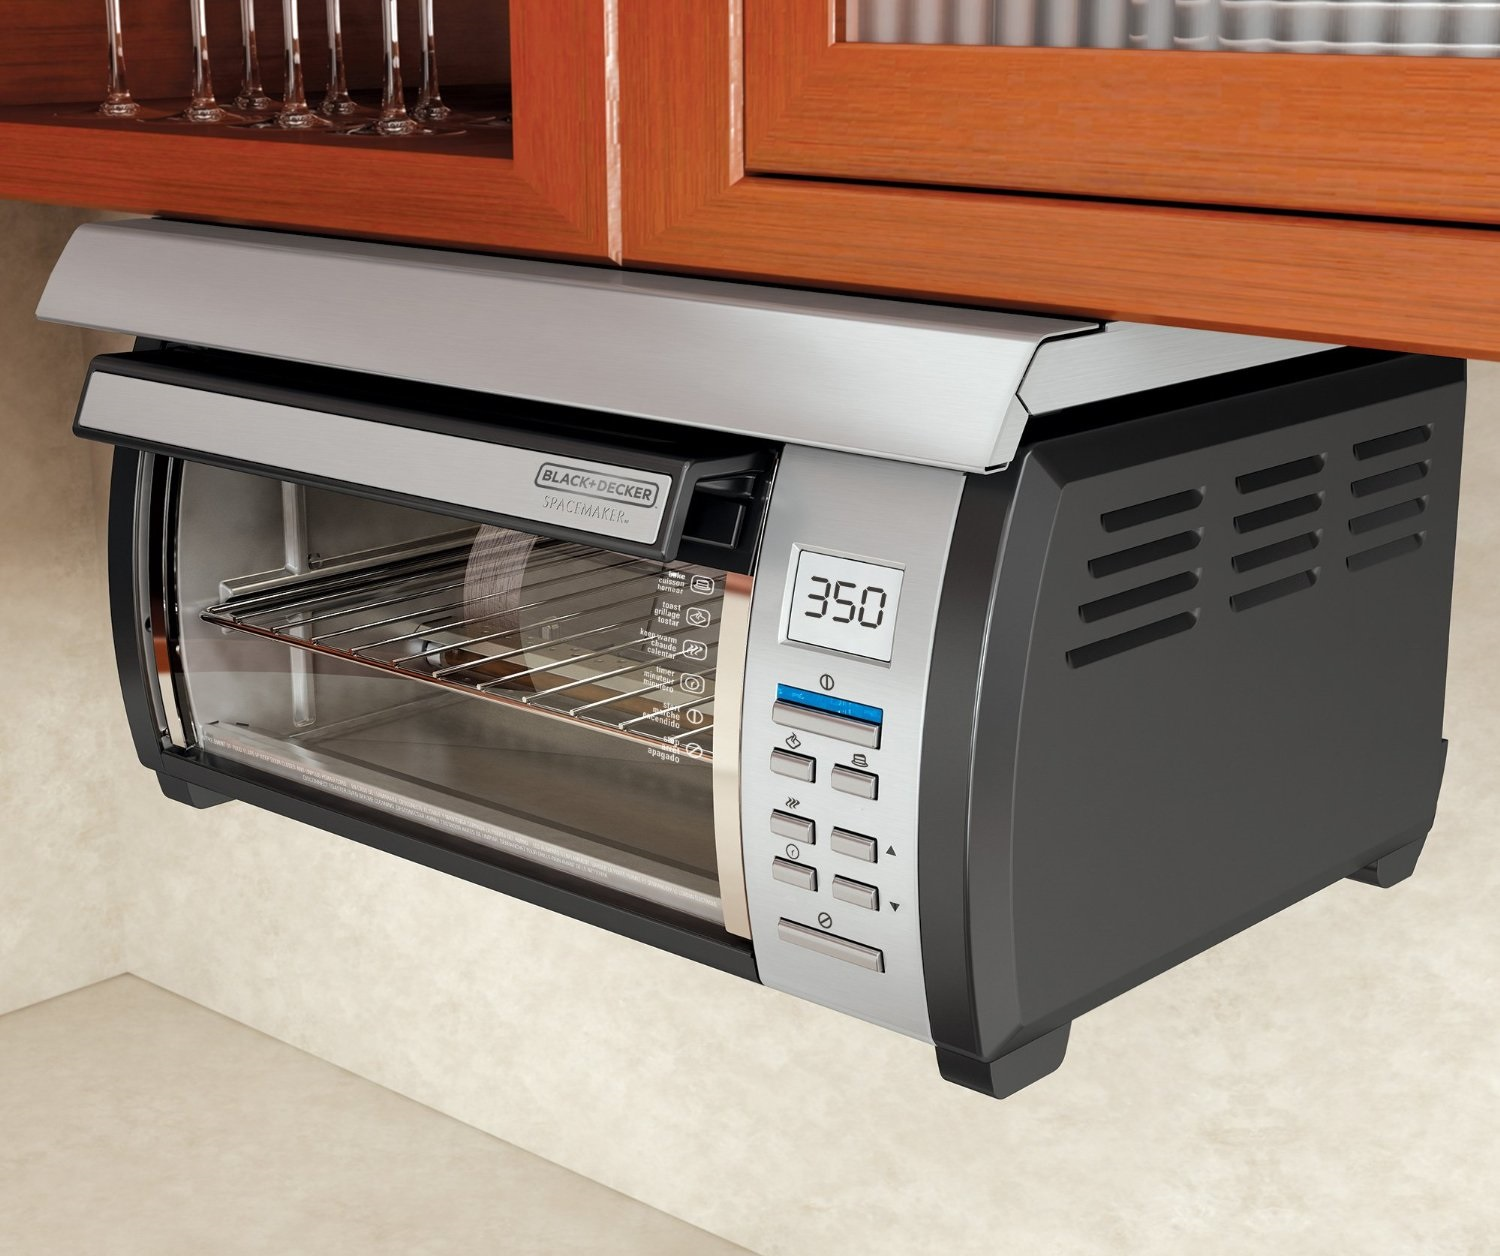 Under Cabinet Toaster Oven Black Amp Decker Tros1000